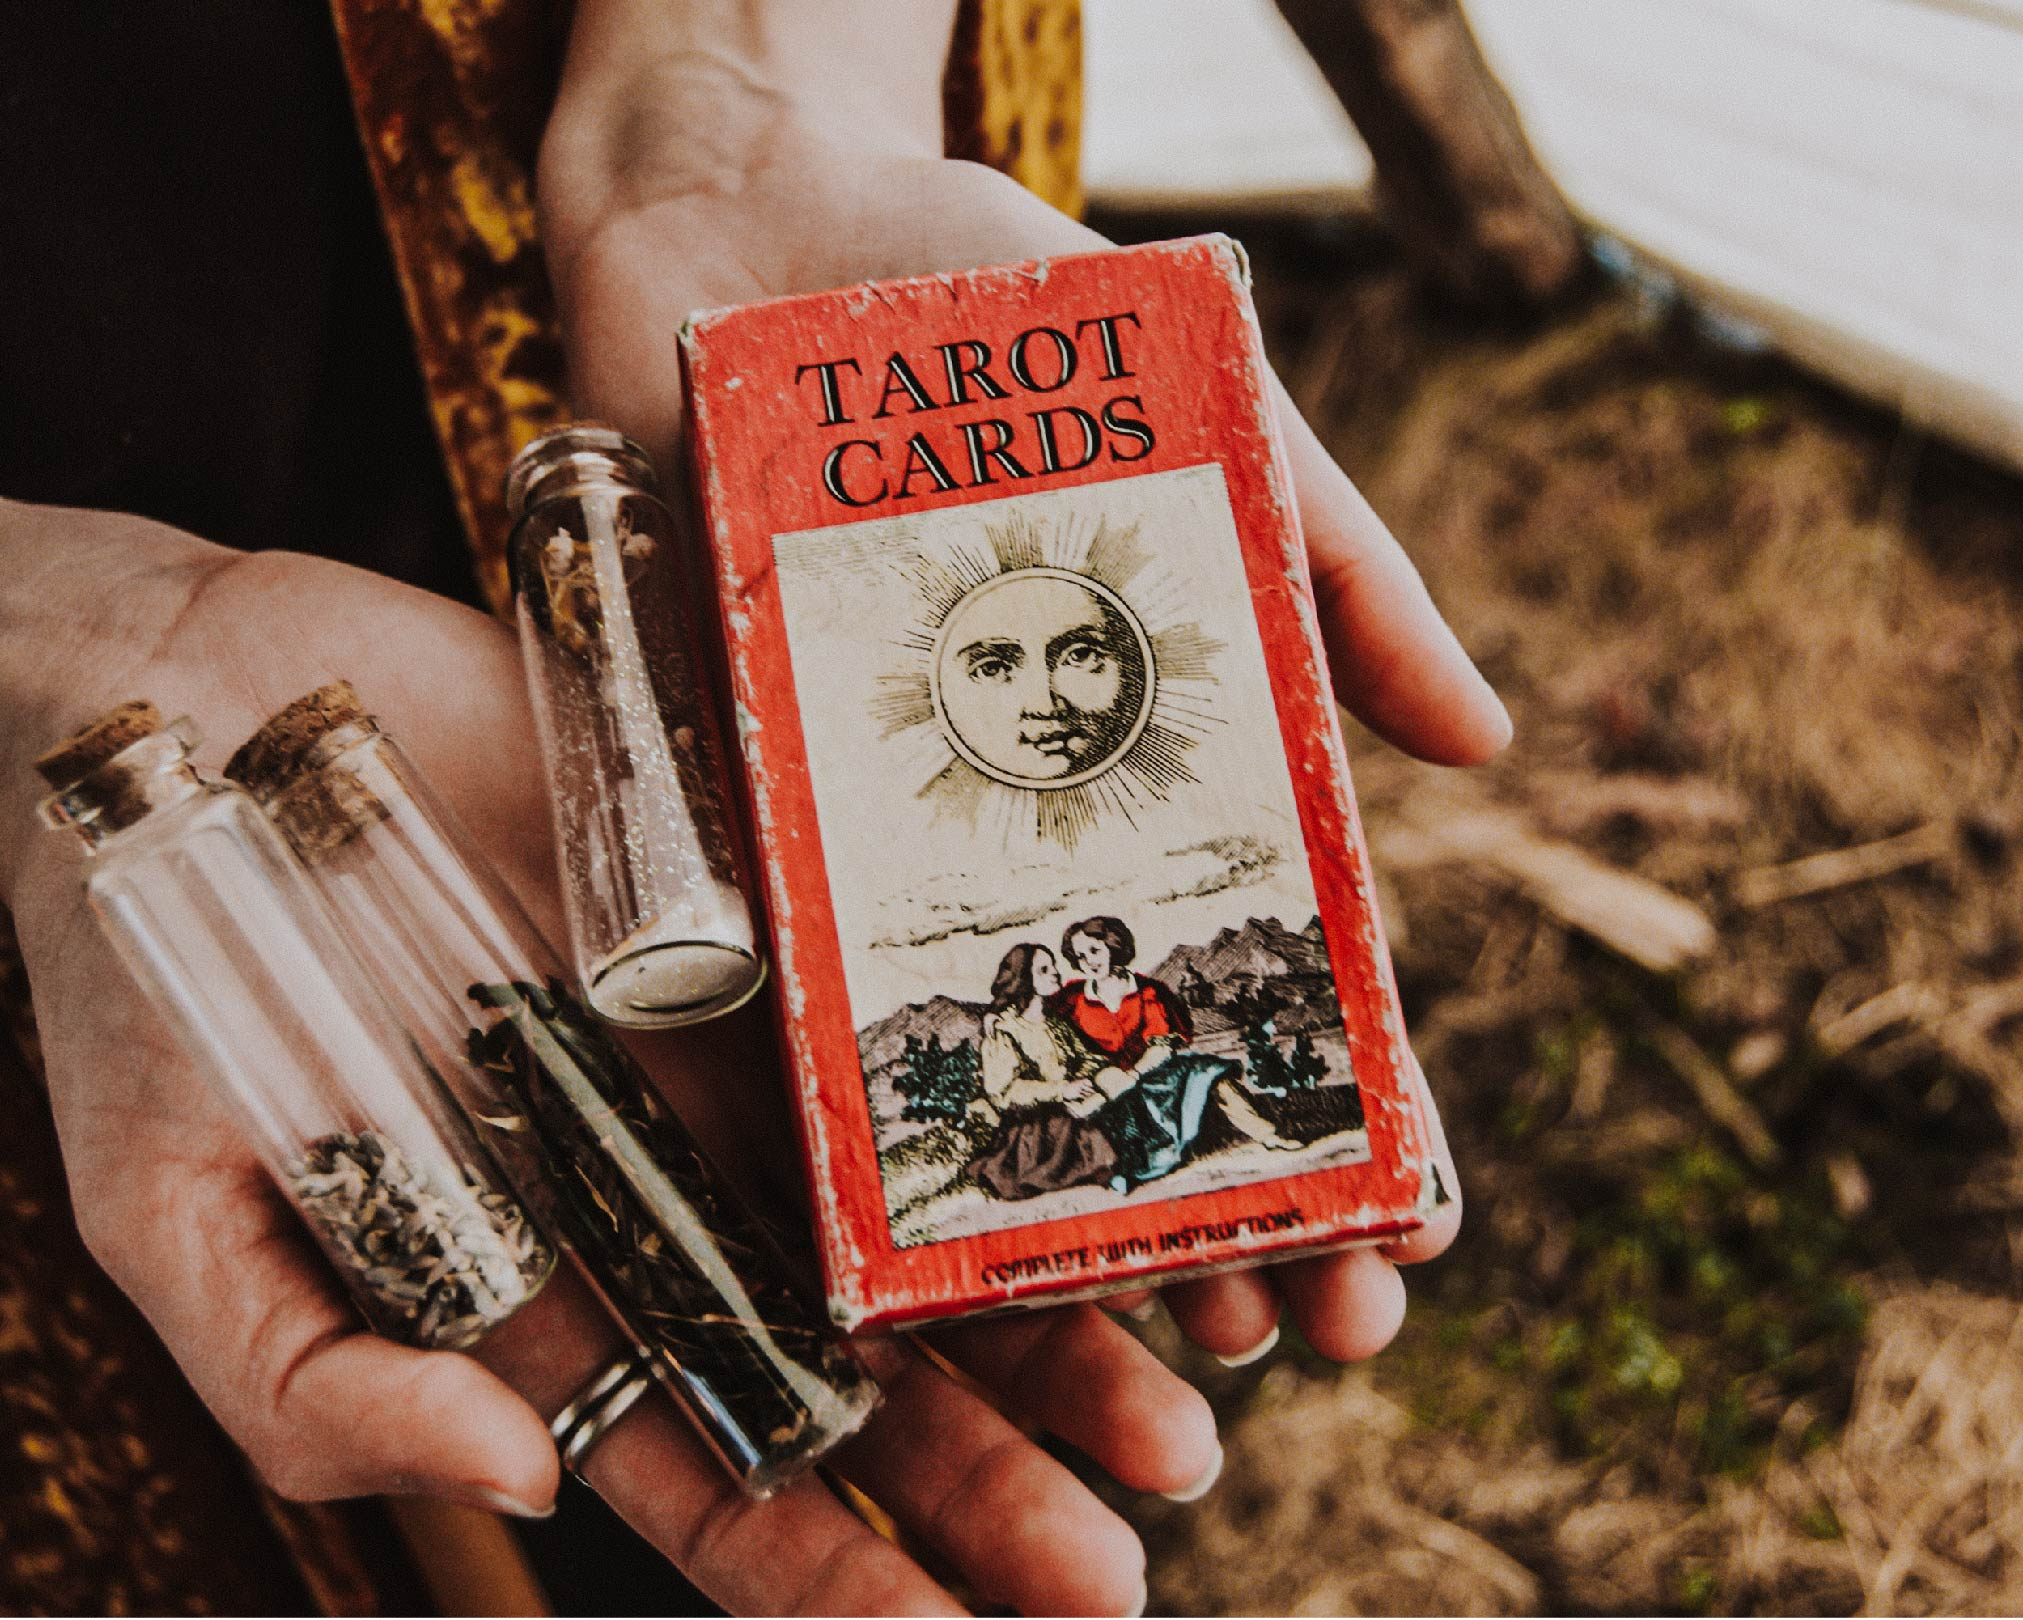 tarot card deck and magic herbs in a witches' vials